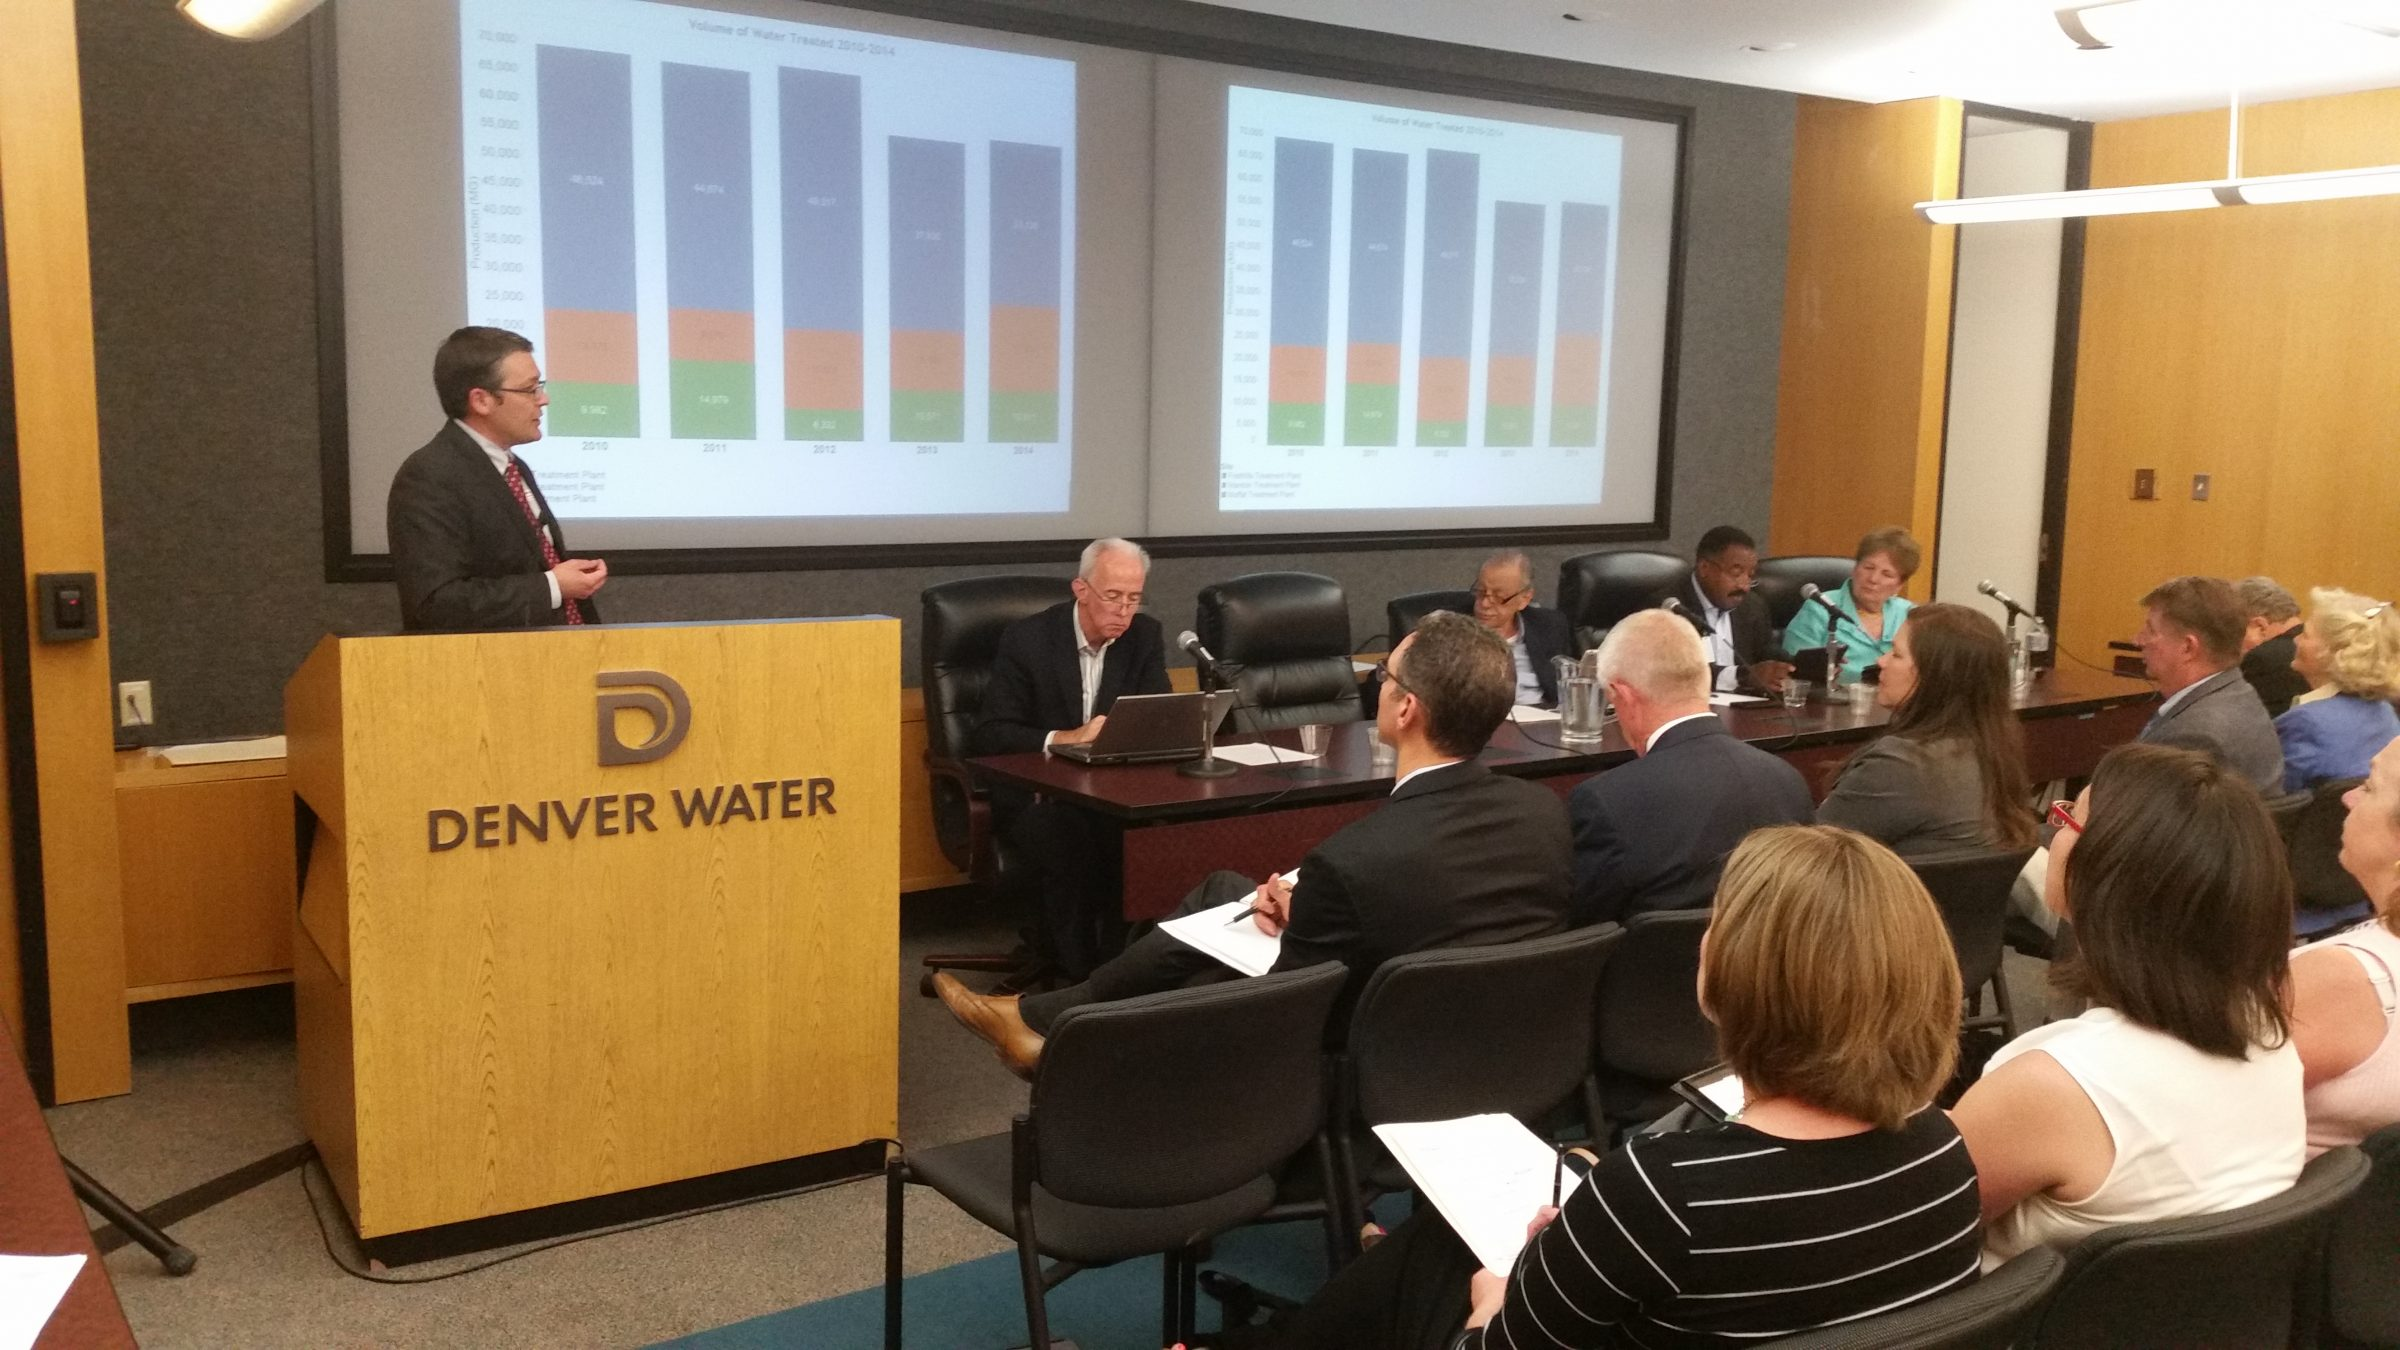 Denver Board of Water Commissioner members listen to information at the July, 2015 fluoride information session.